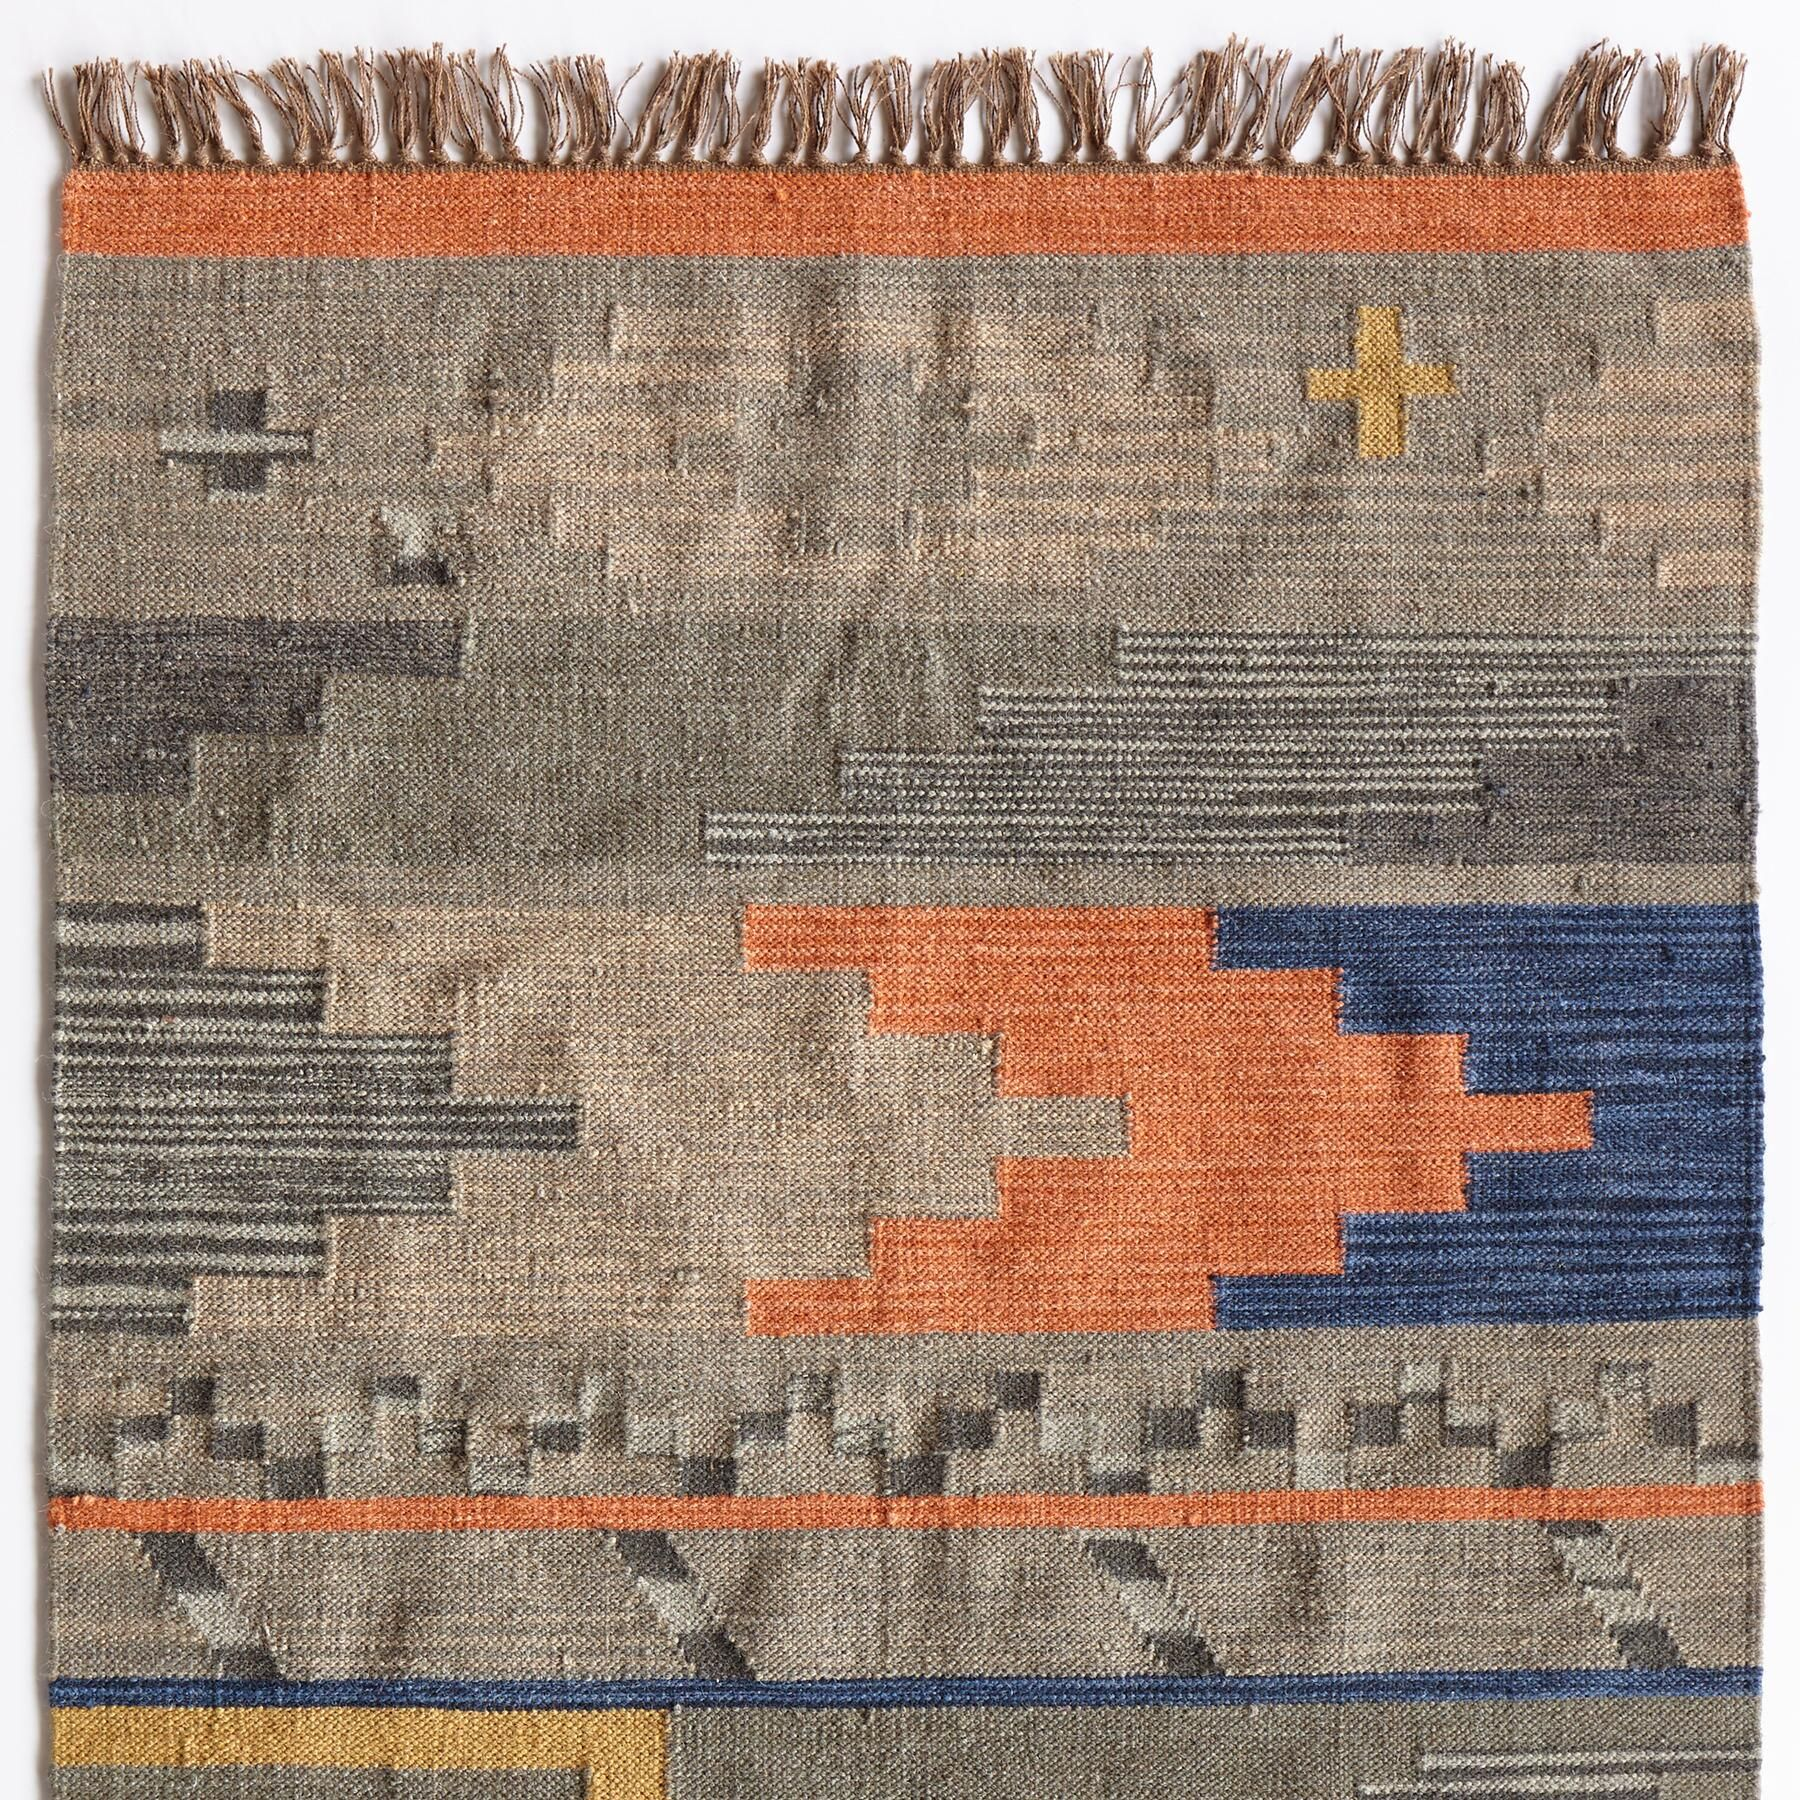 TERROIR DHURRIE RUG - SM--A fresh take on a timeless style, bright earthen colors please in a lively, contemporary design. Wool. Imported. Exclusive. 2-1/2' x 8'